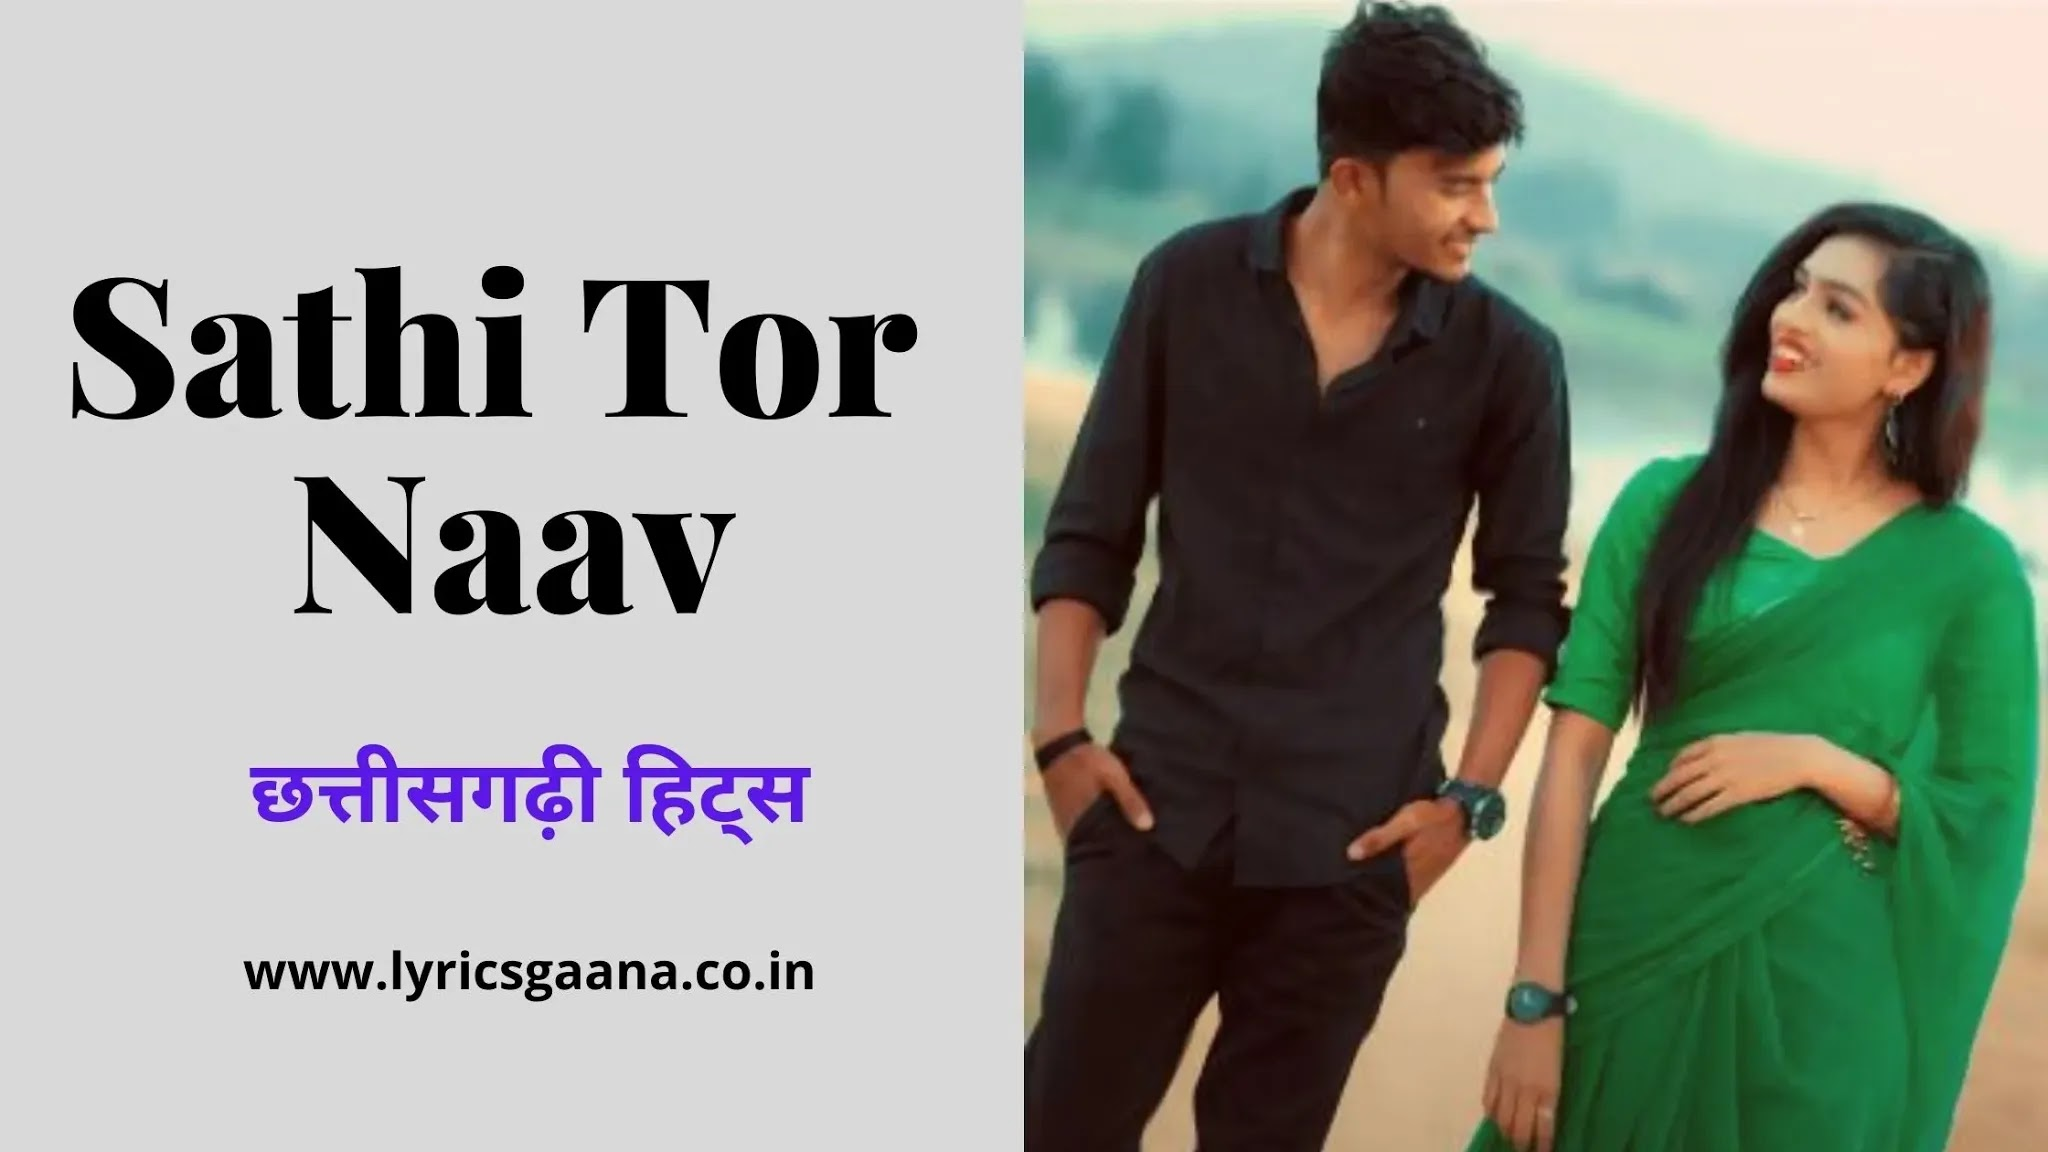 साथी तोर नाव Sathi Tor Naav Cg Song Lyrics | Chhattisgarhi Gana